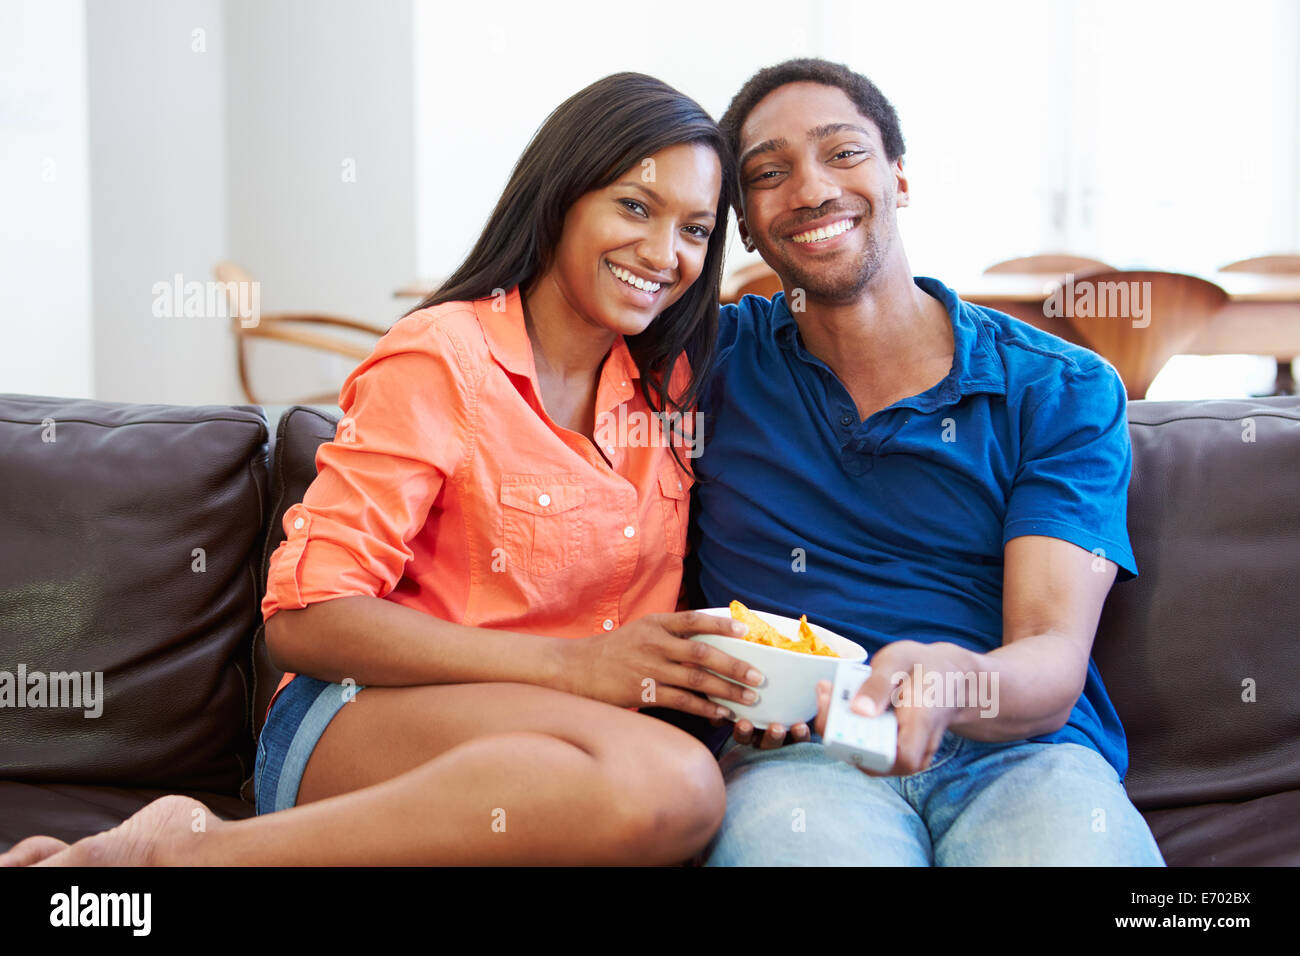 Couple Sitting On Sofa Watching TV Together - Stock Image